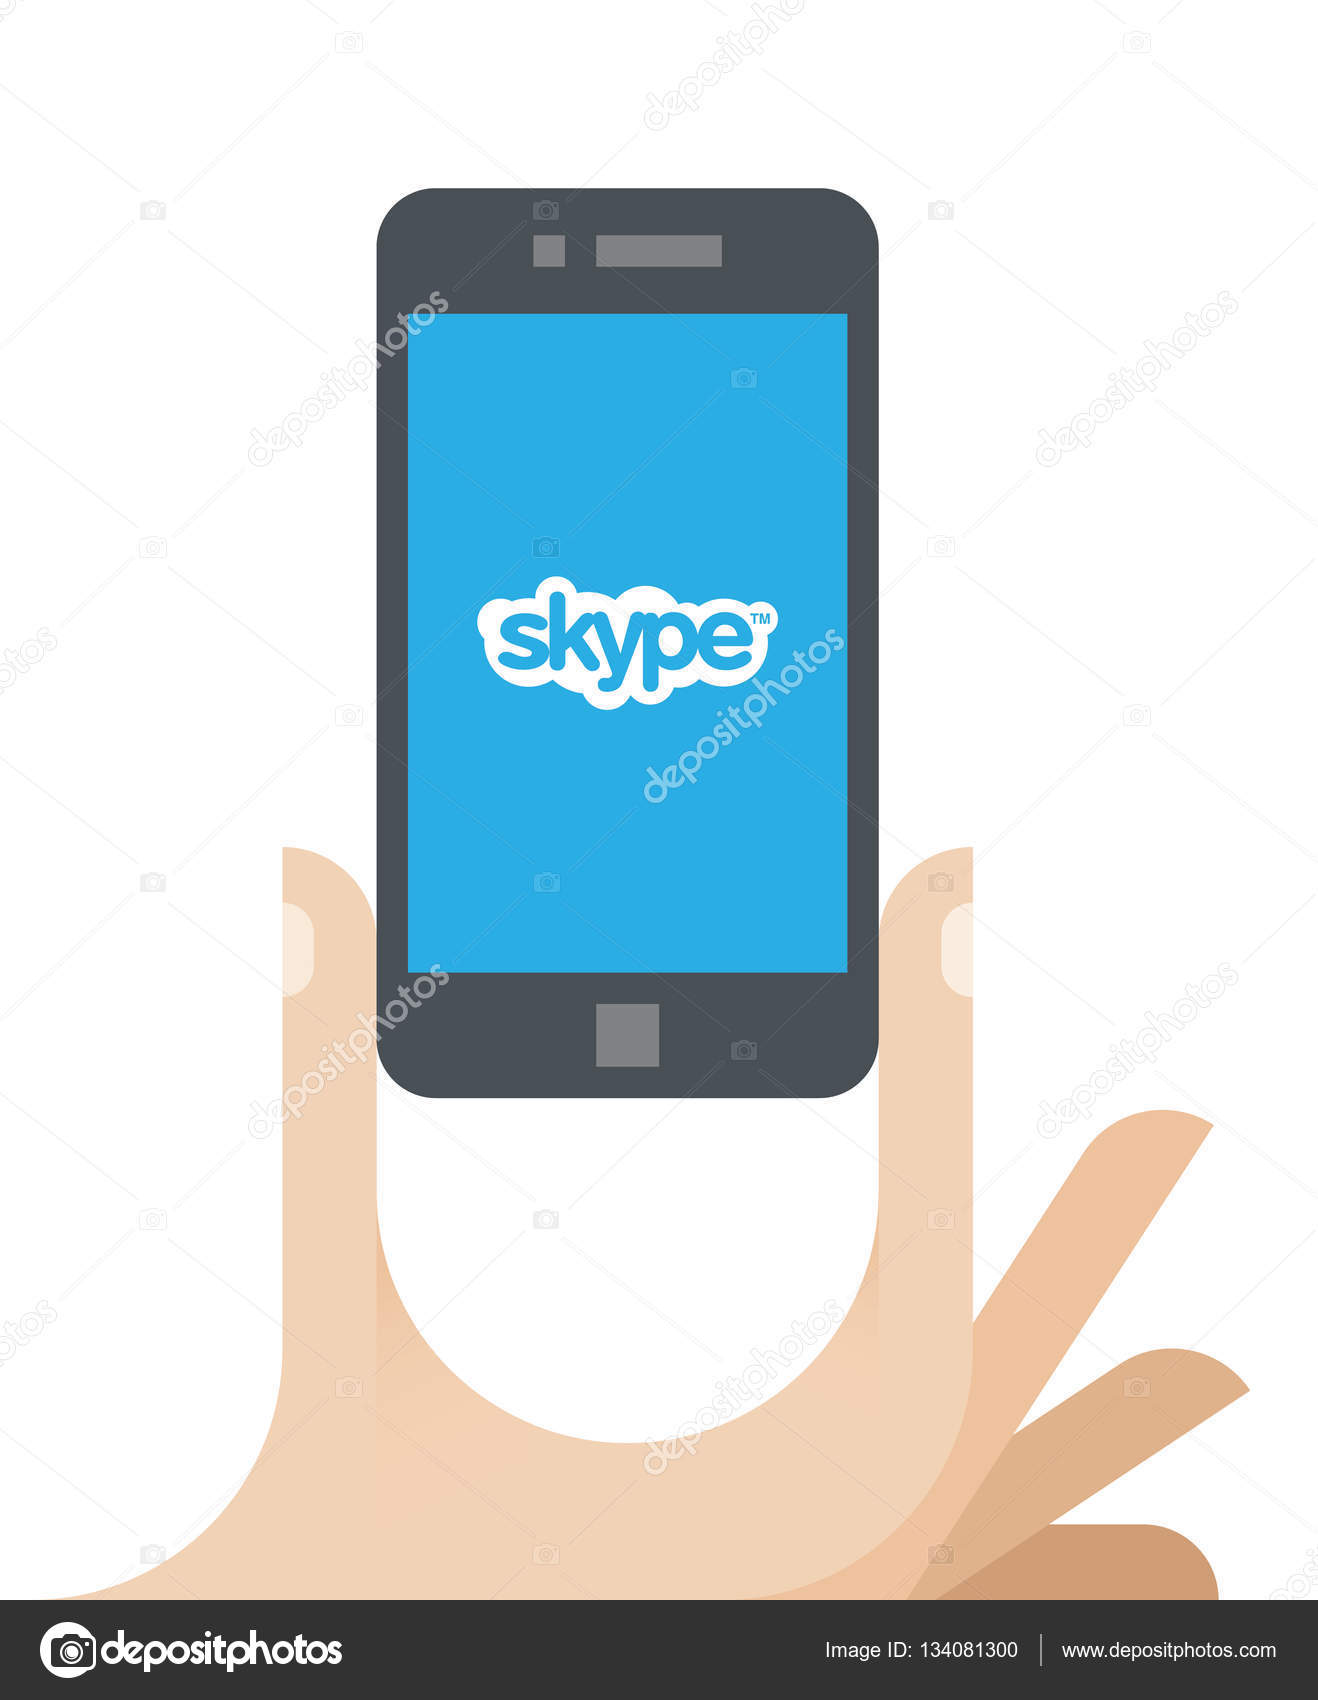 How to Add Phone Contacts to Skype